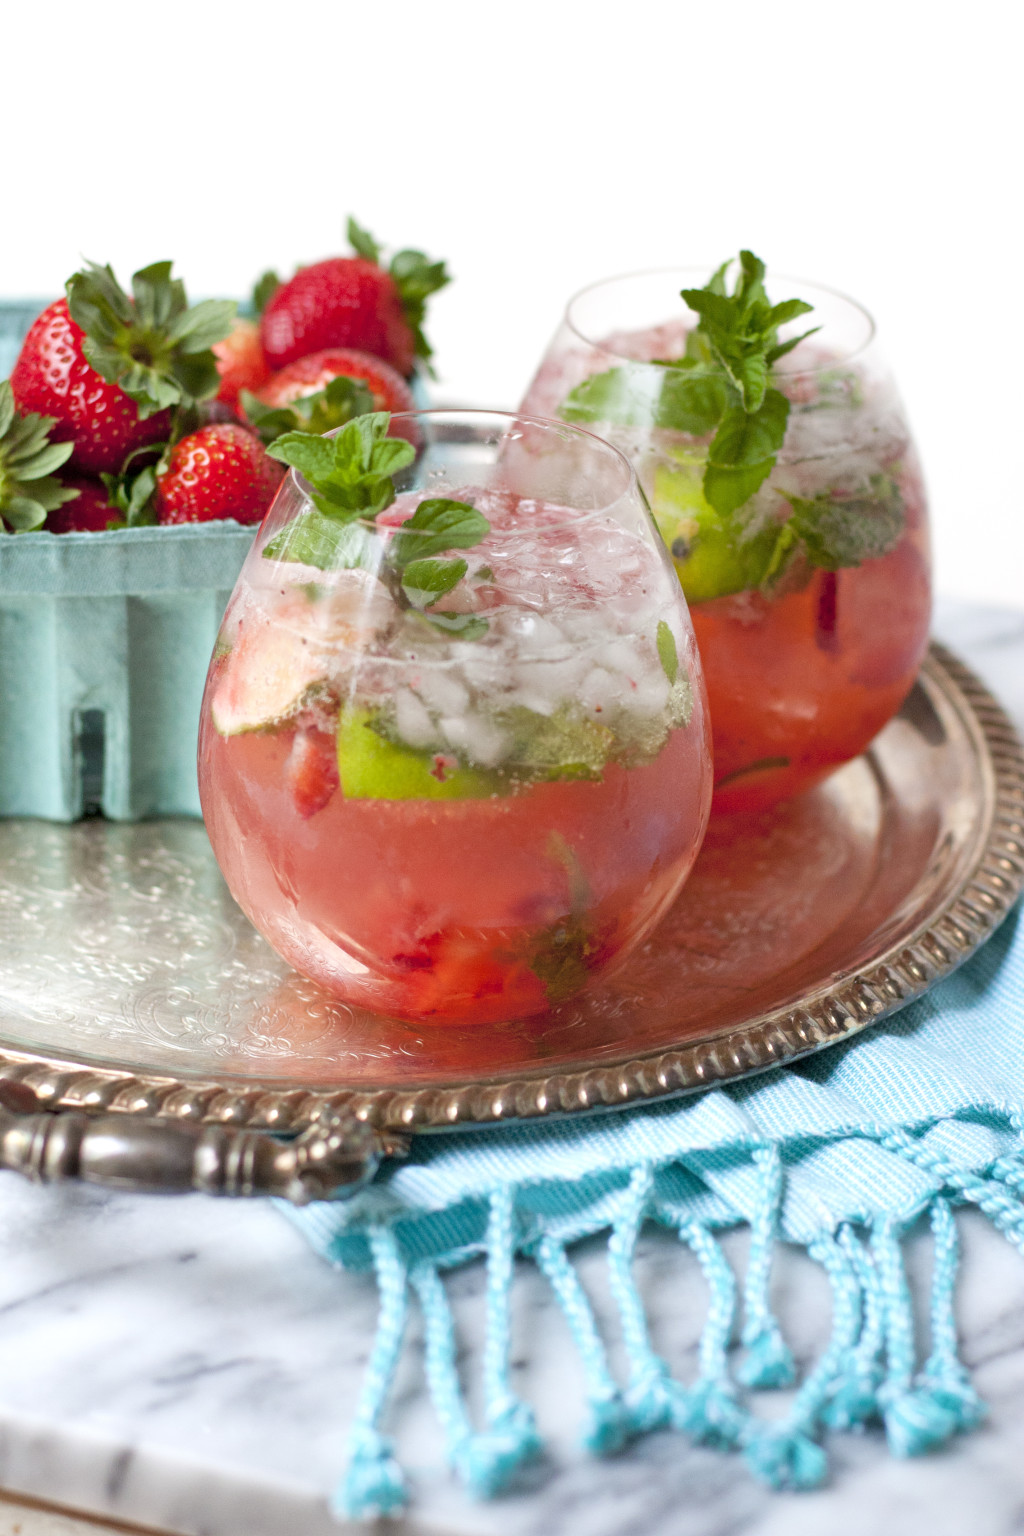 Strawberry and Passion Fruit Caipirinha